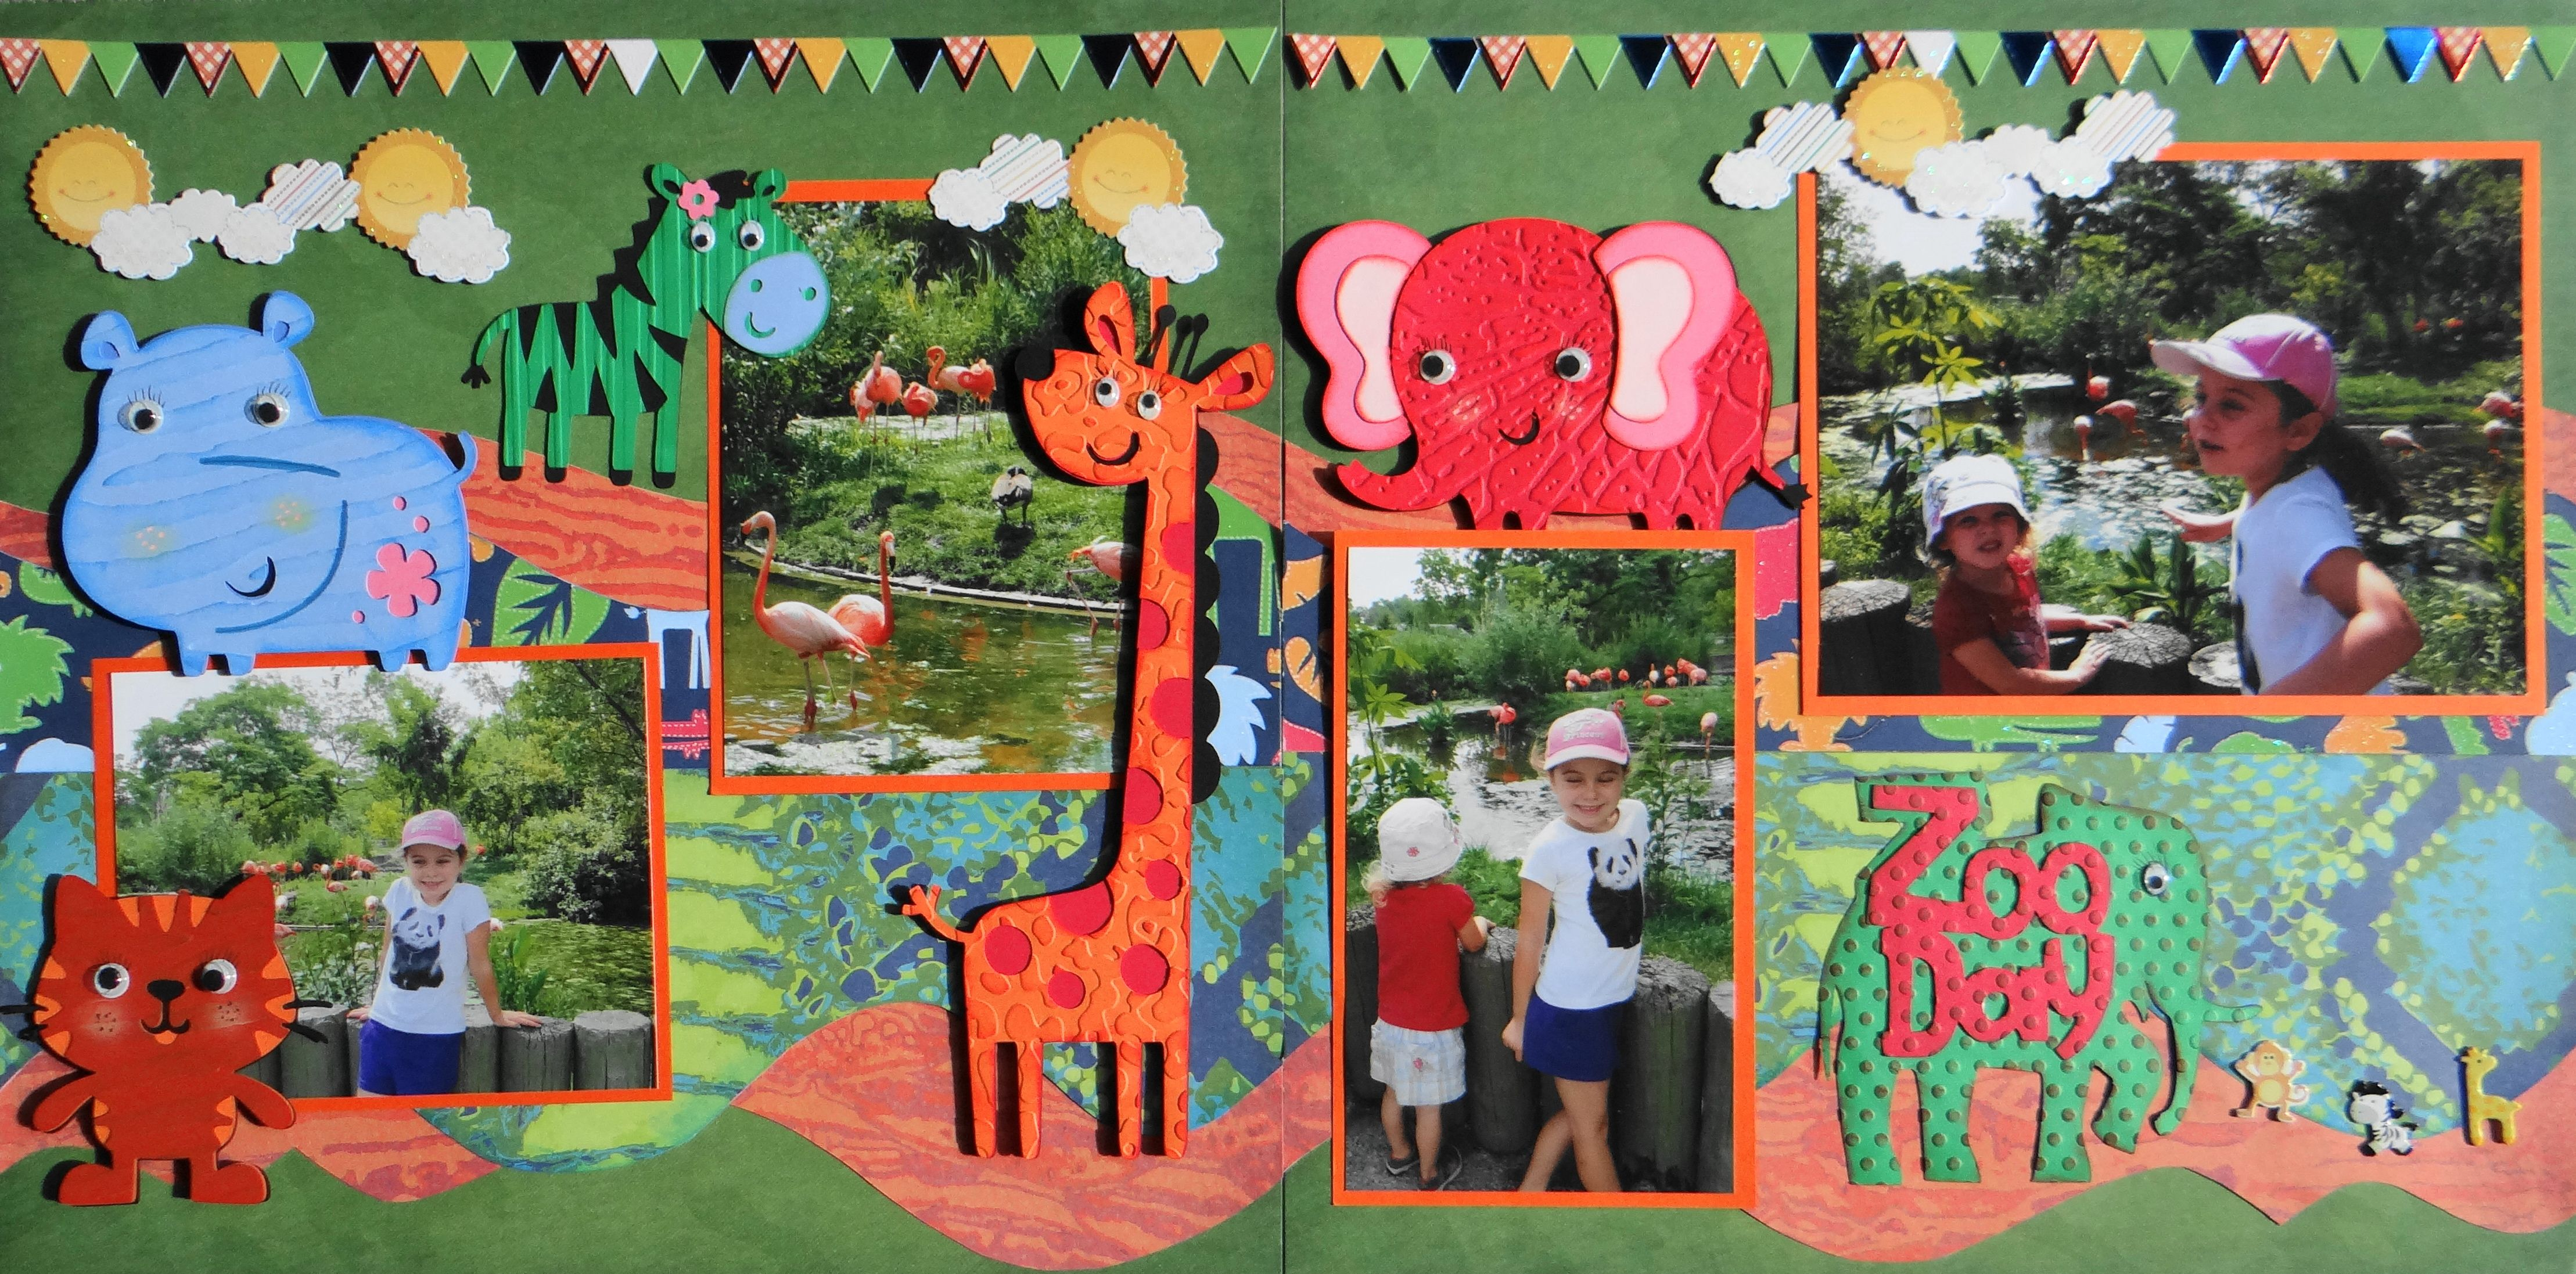 Zoo animal scrapbook ideas - Scrapbook Page Zoo Day 2 Page Layout With Hippo Tiger Zebra